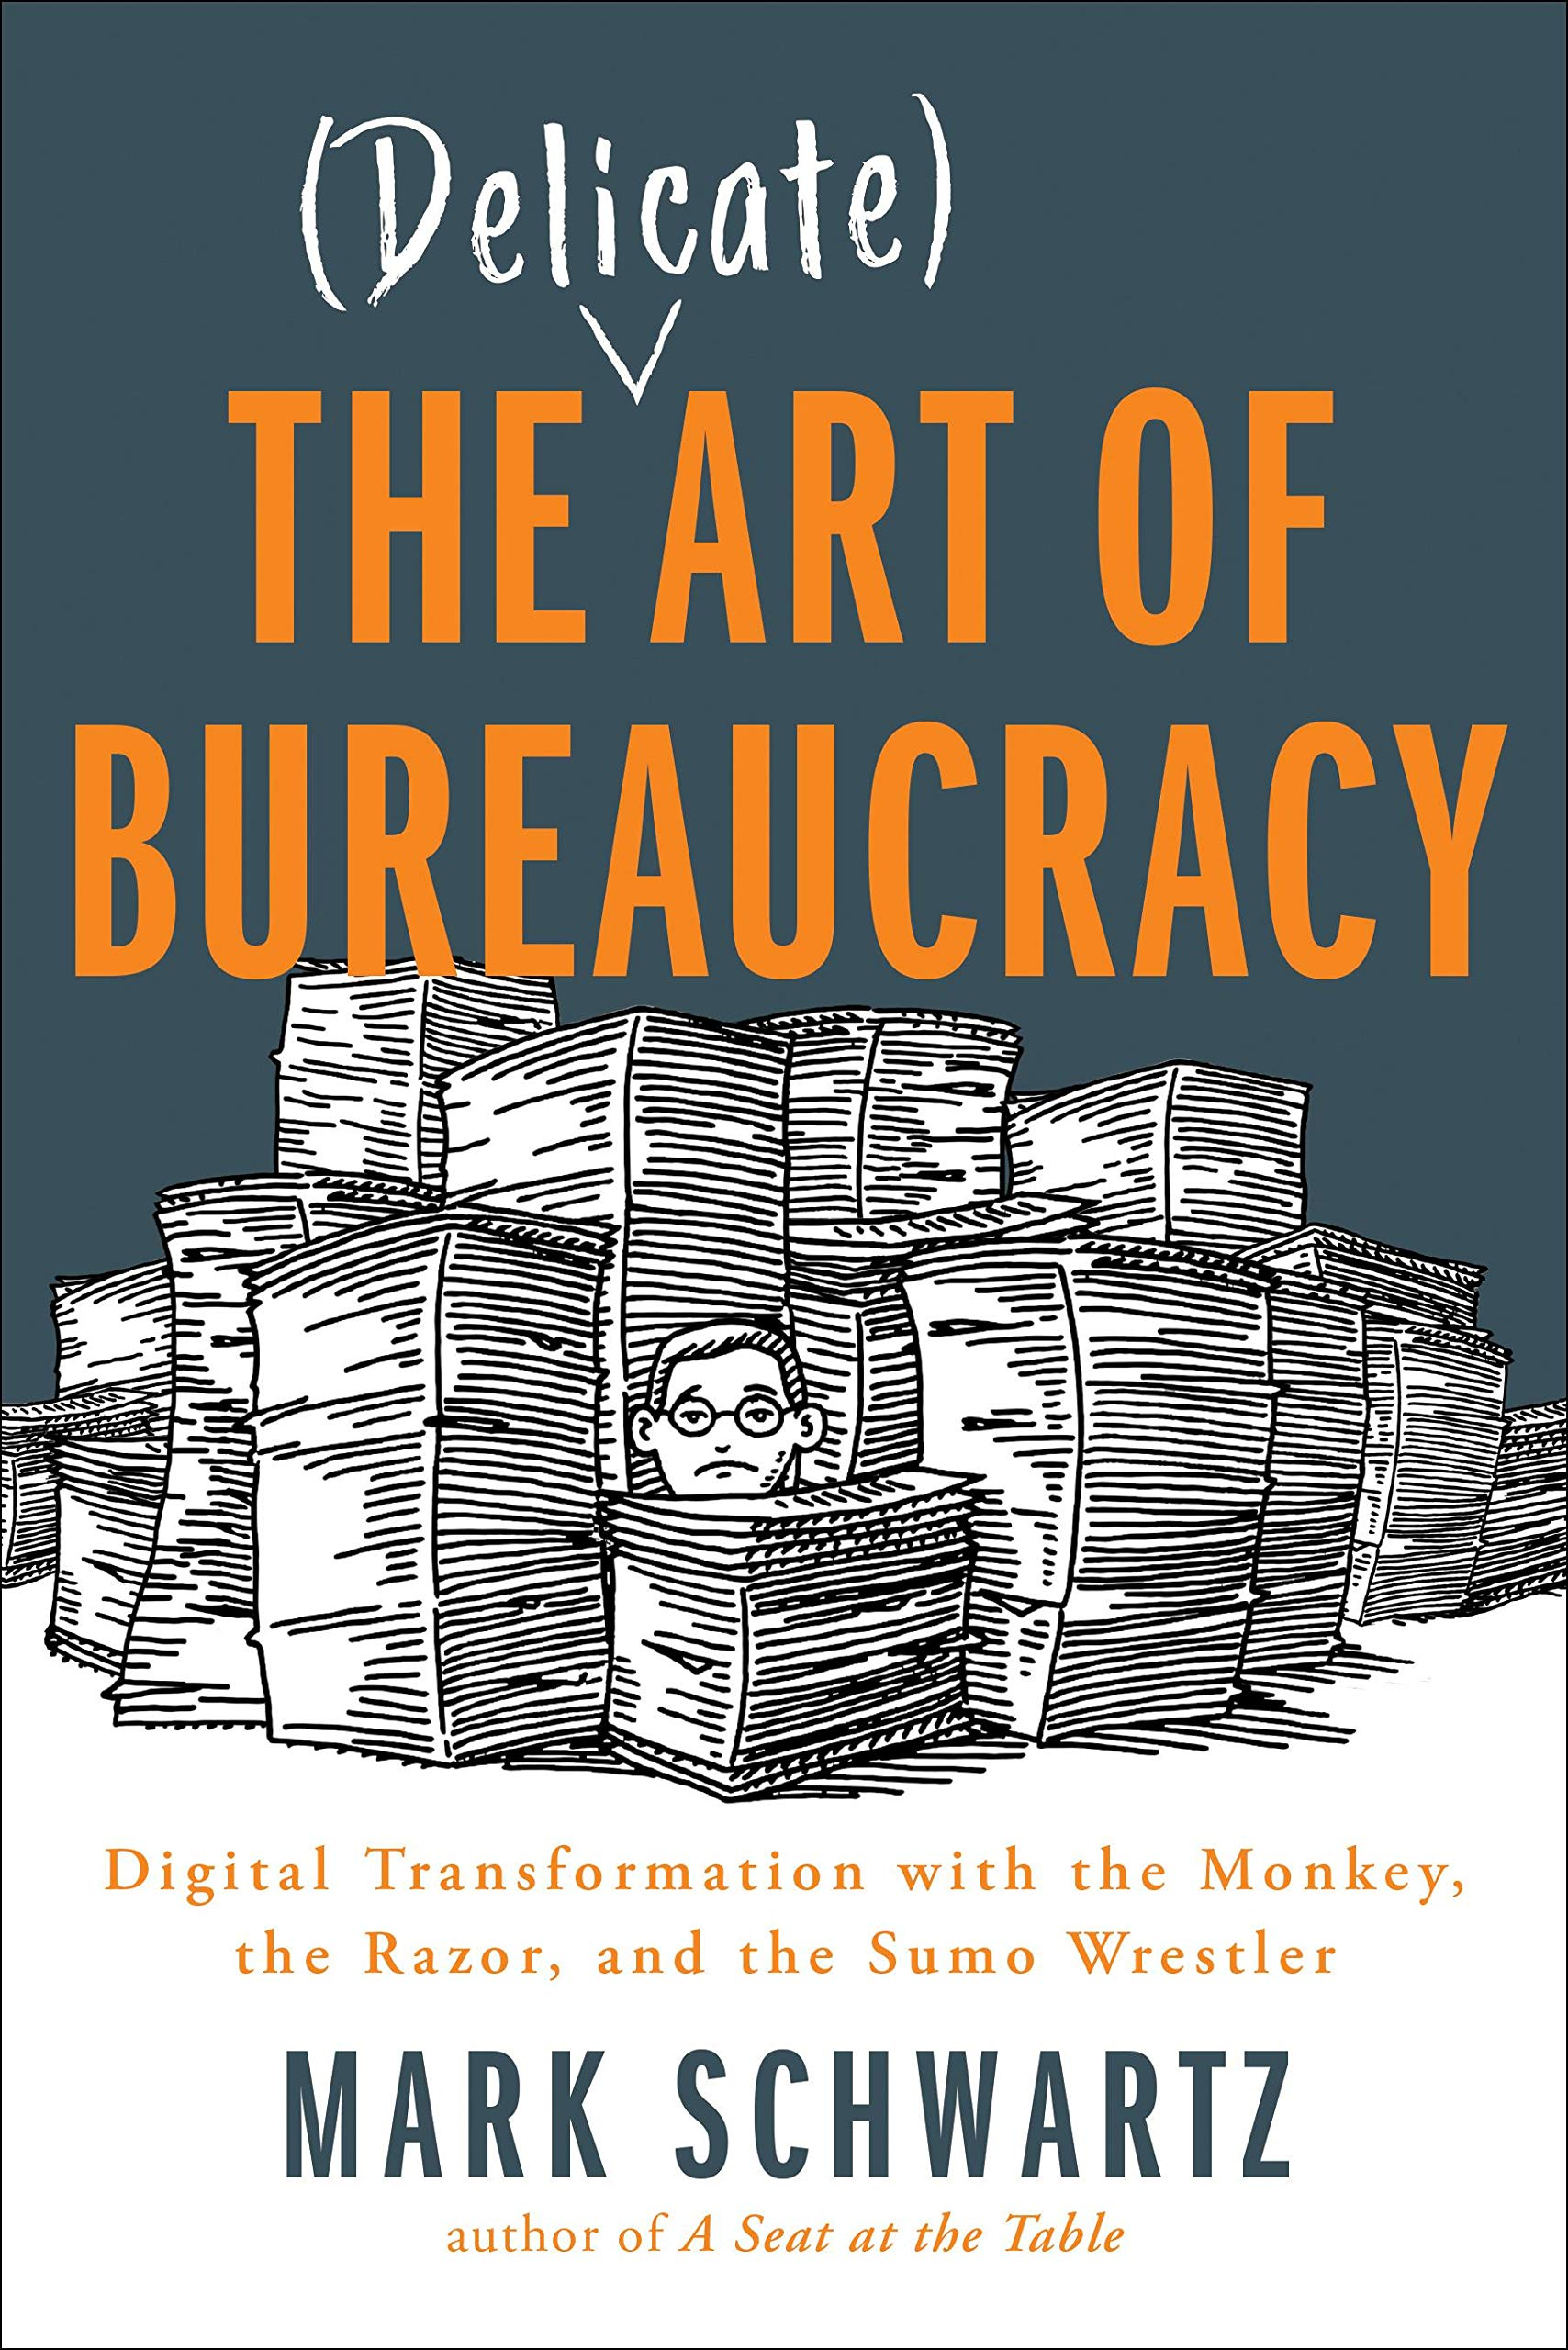 The Delicate Art of Bureaucracy: Digital Transformation with the Monkey,  the Razor, and the Sumo Wrestler: Schwartz, Mark: Amazon.com.mx: Libros